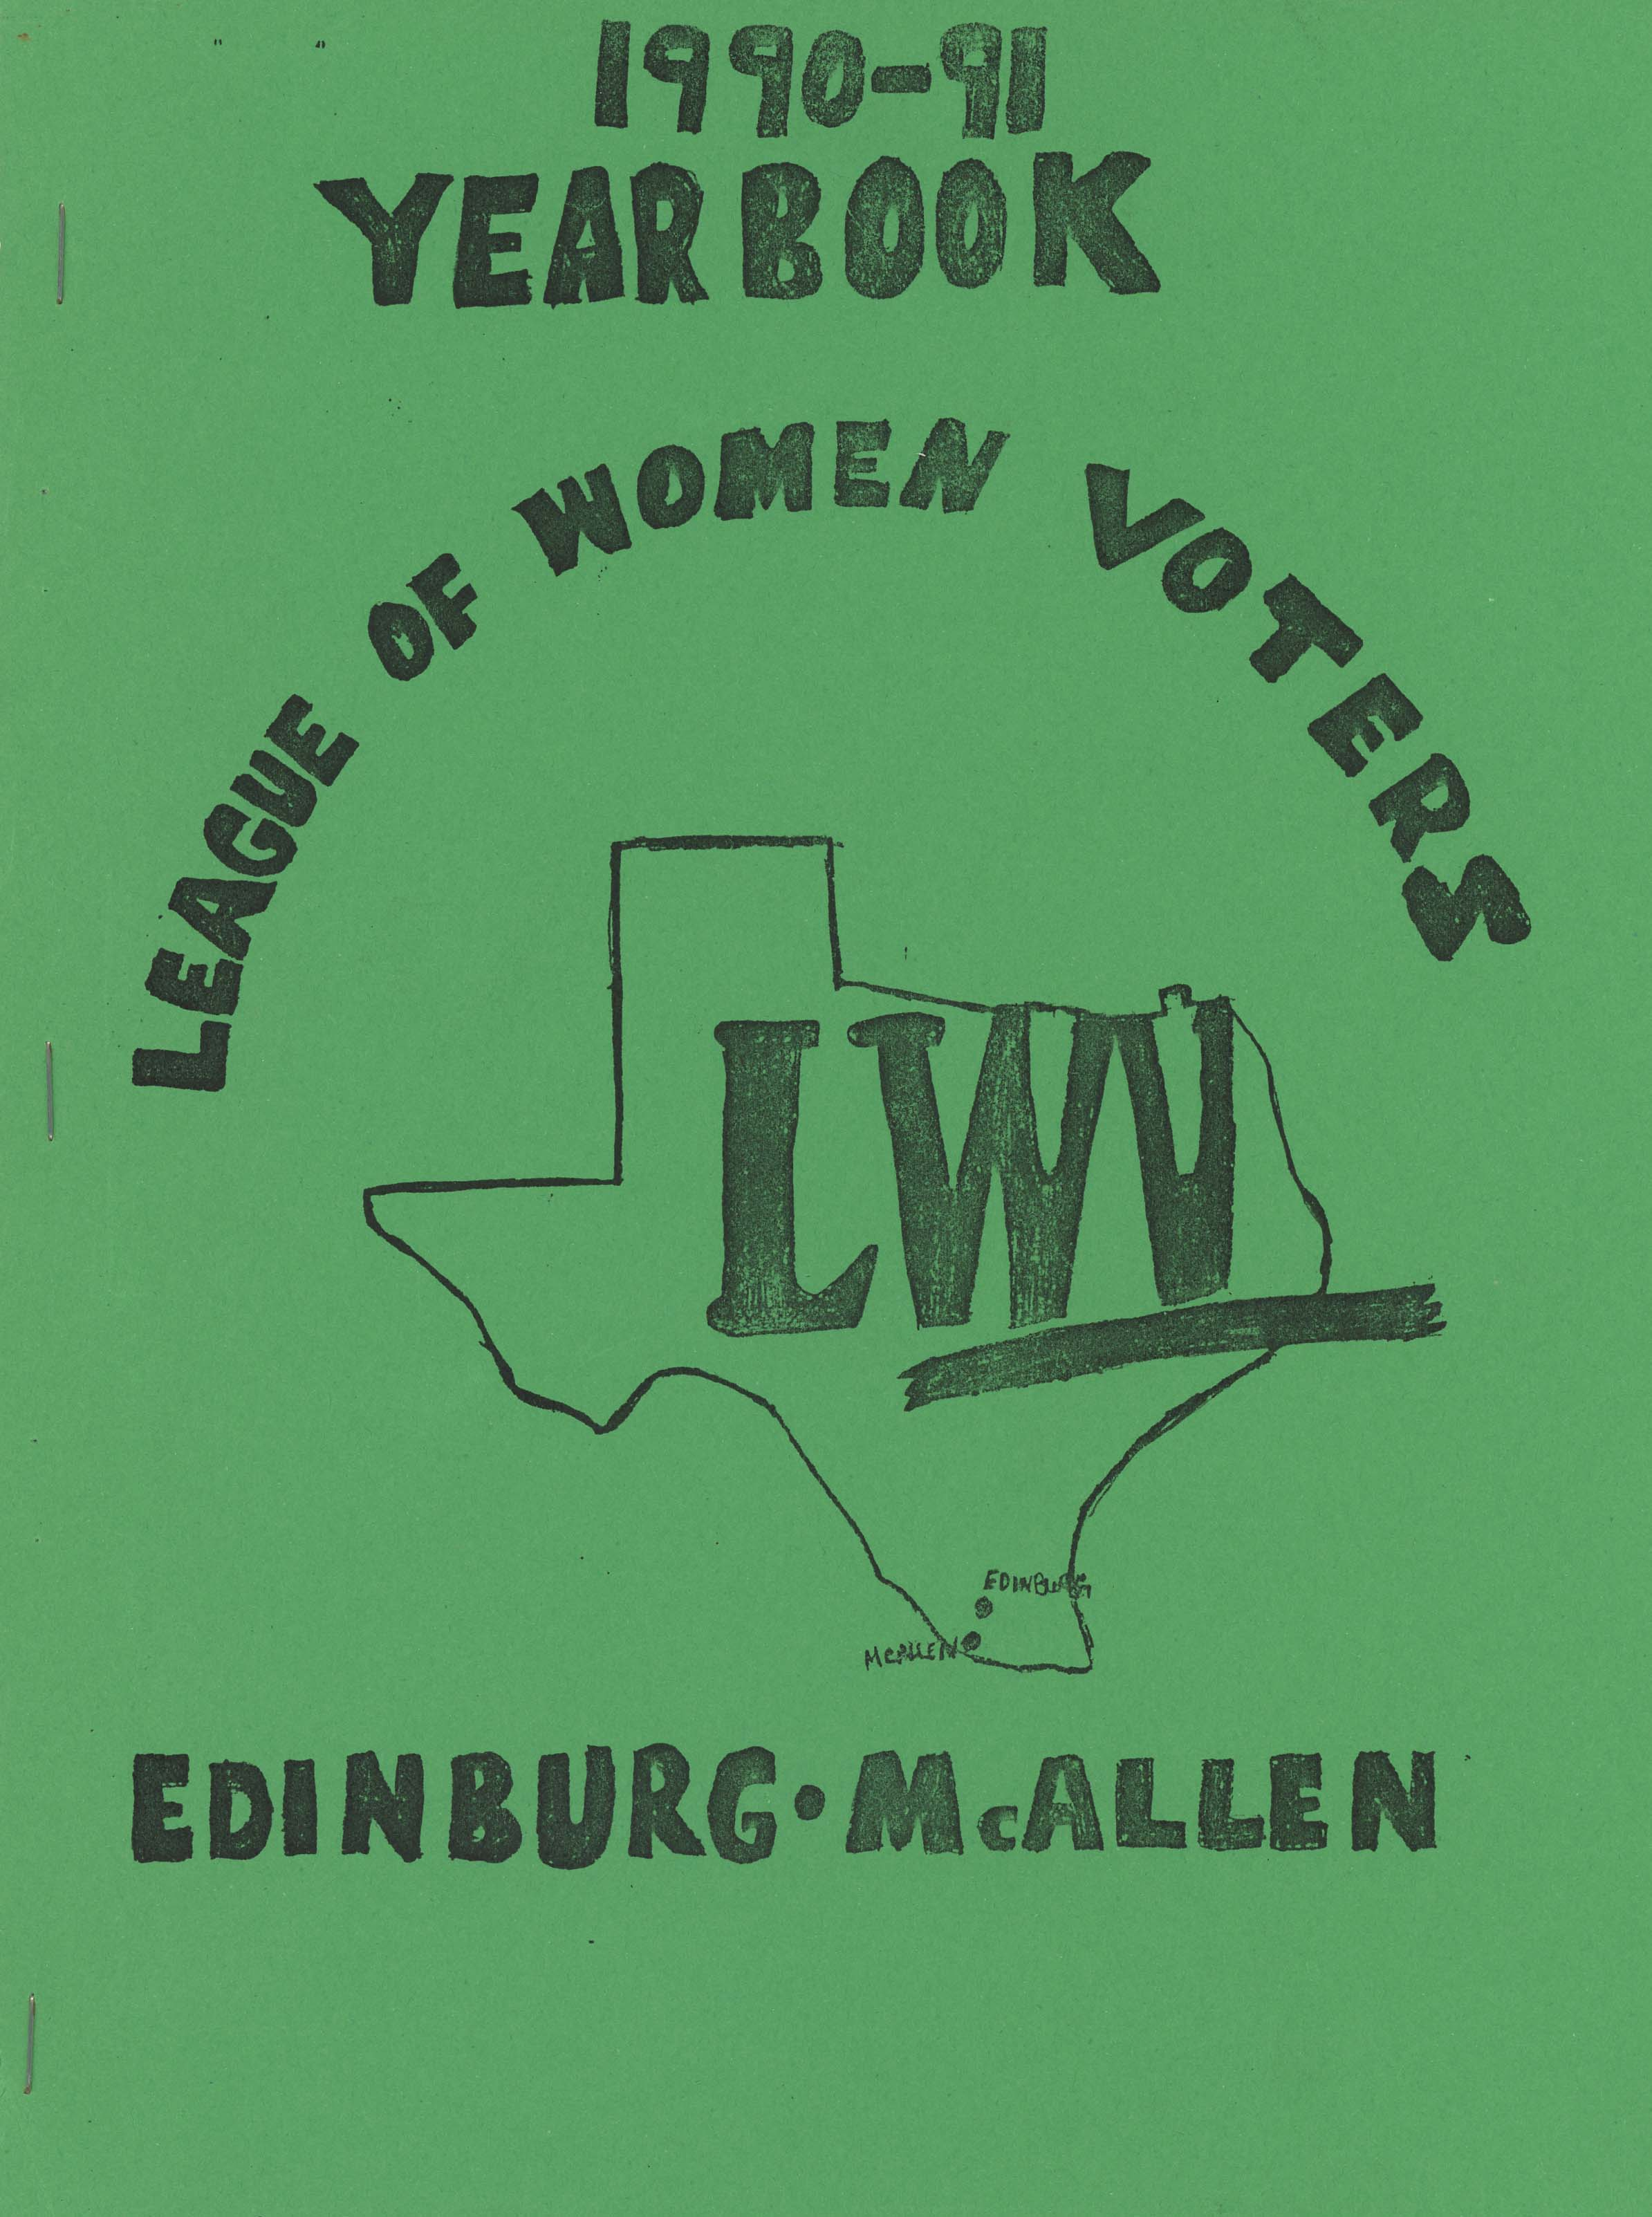 League of Women Voters photo-1